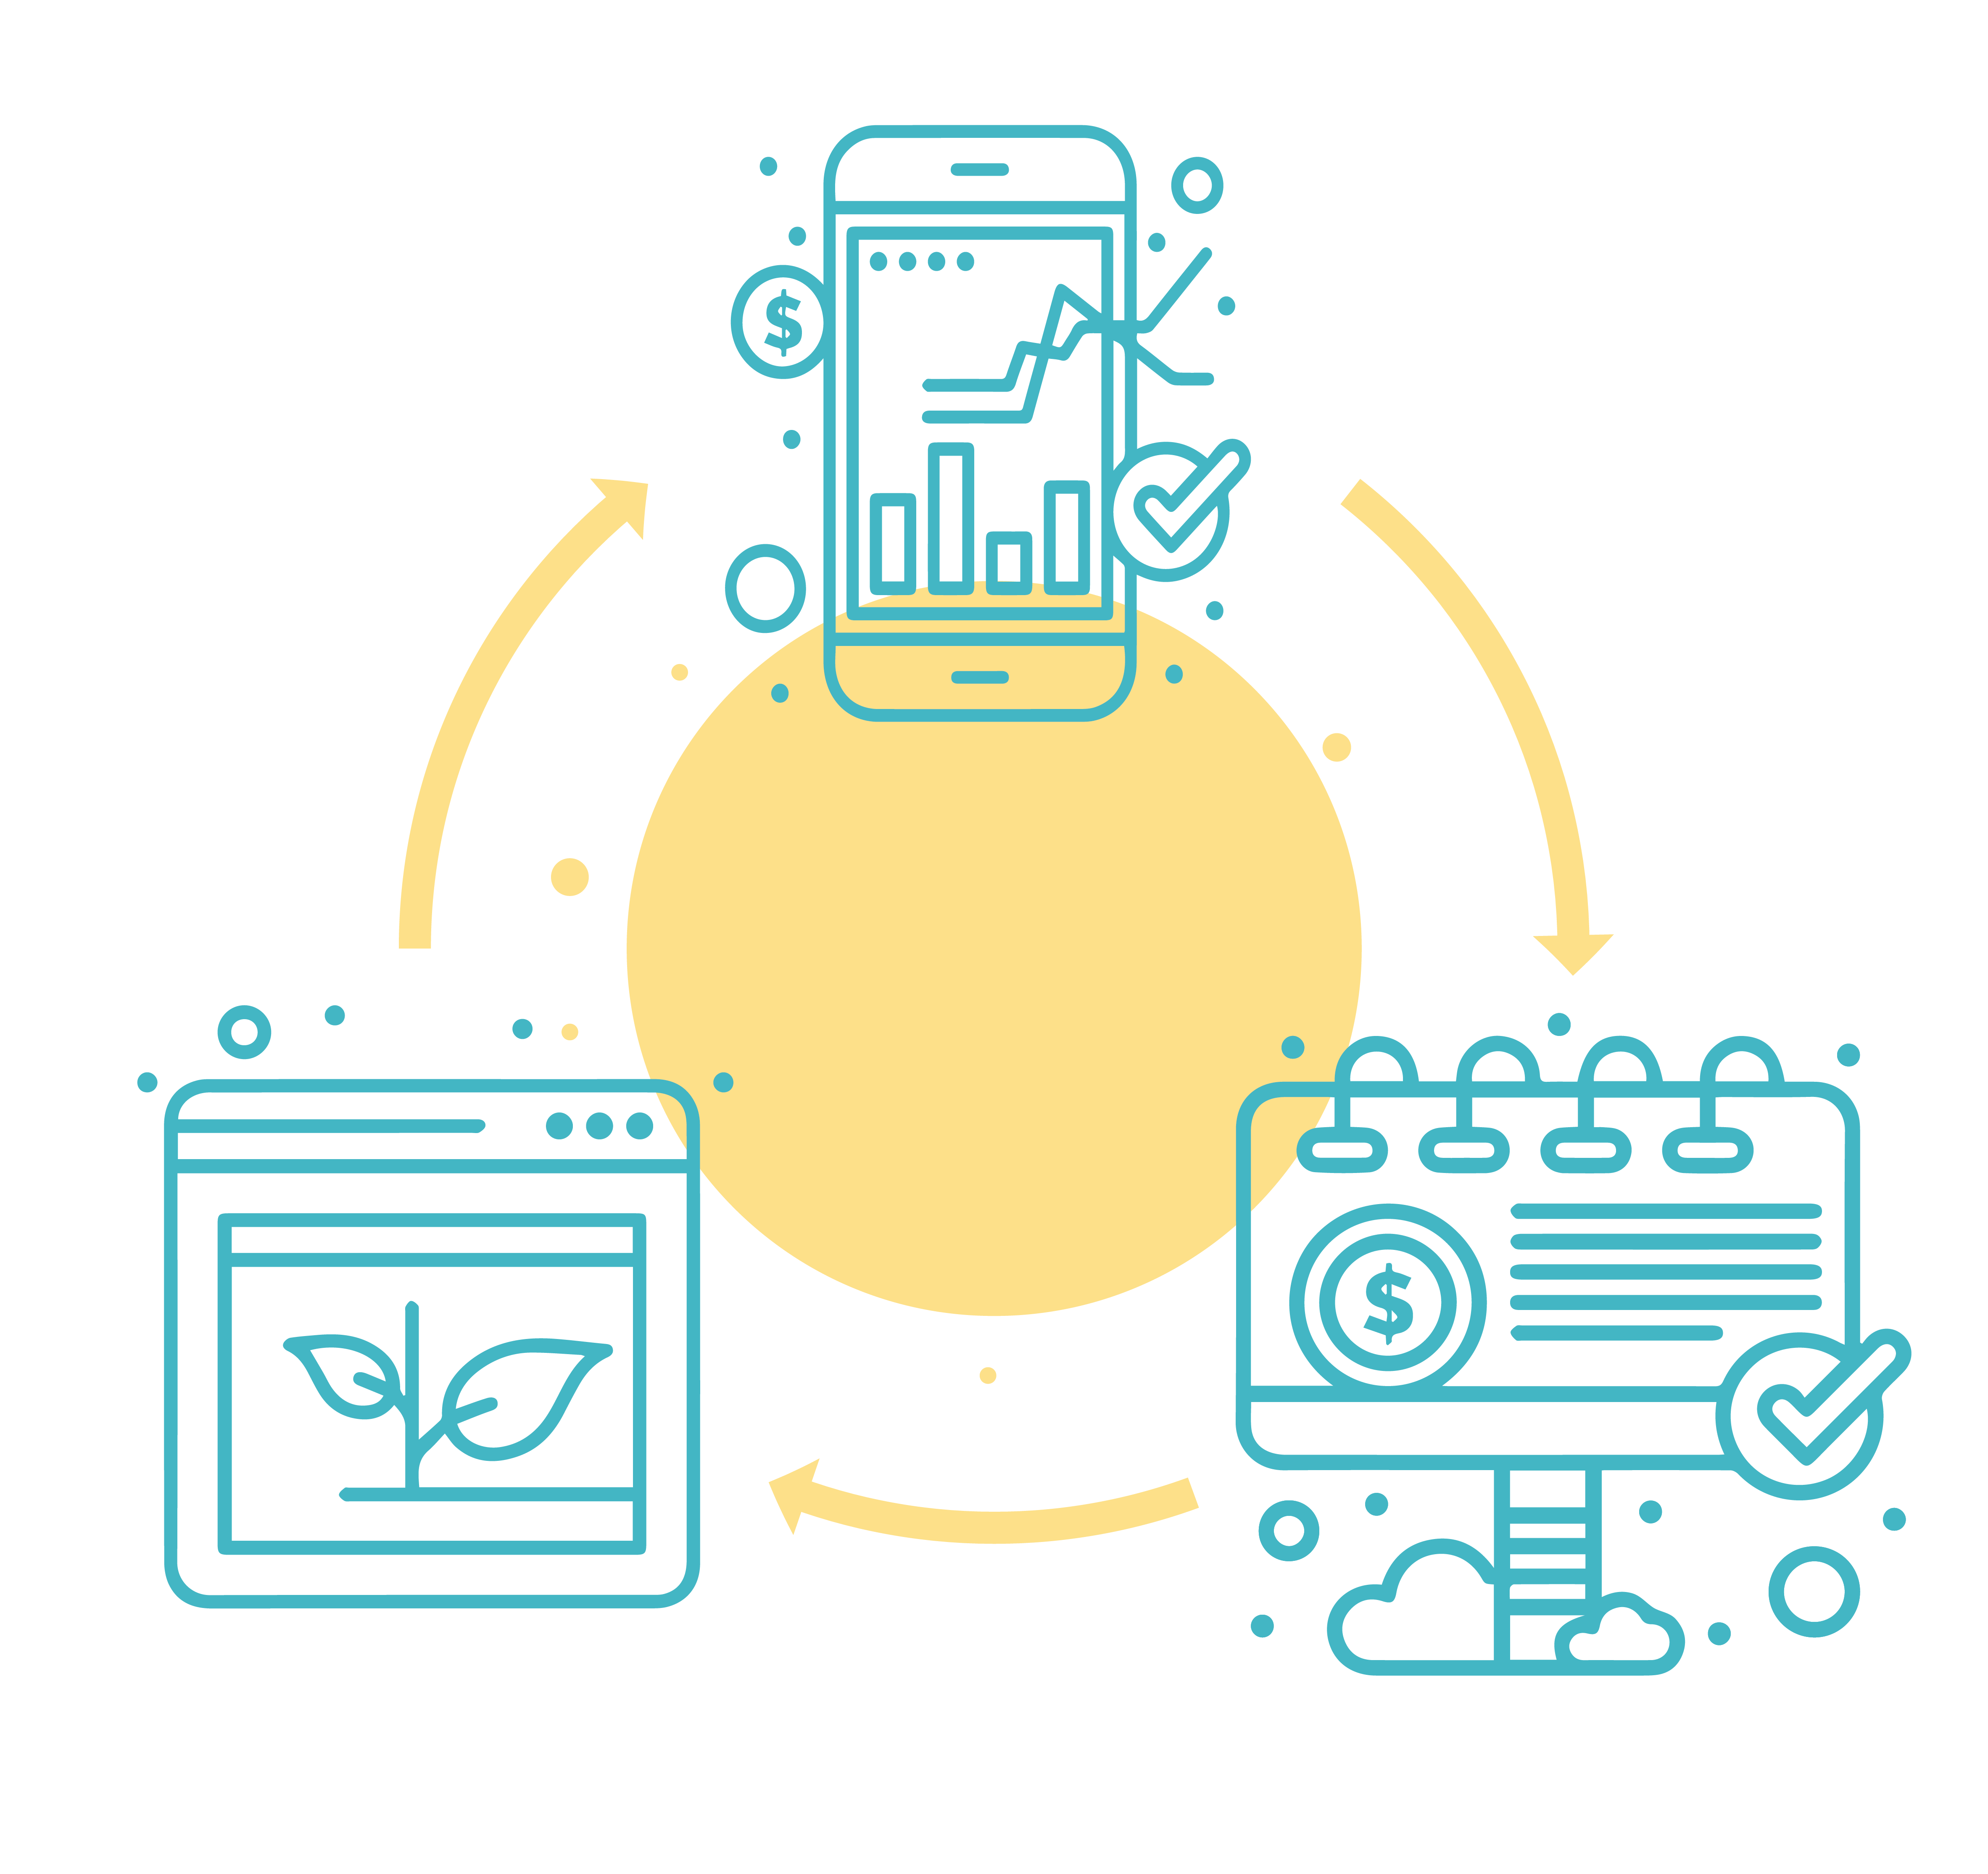 Icon detailing the cyclical nature of our services: web design, social media management and copy writing